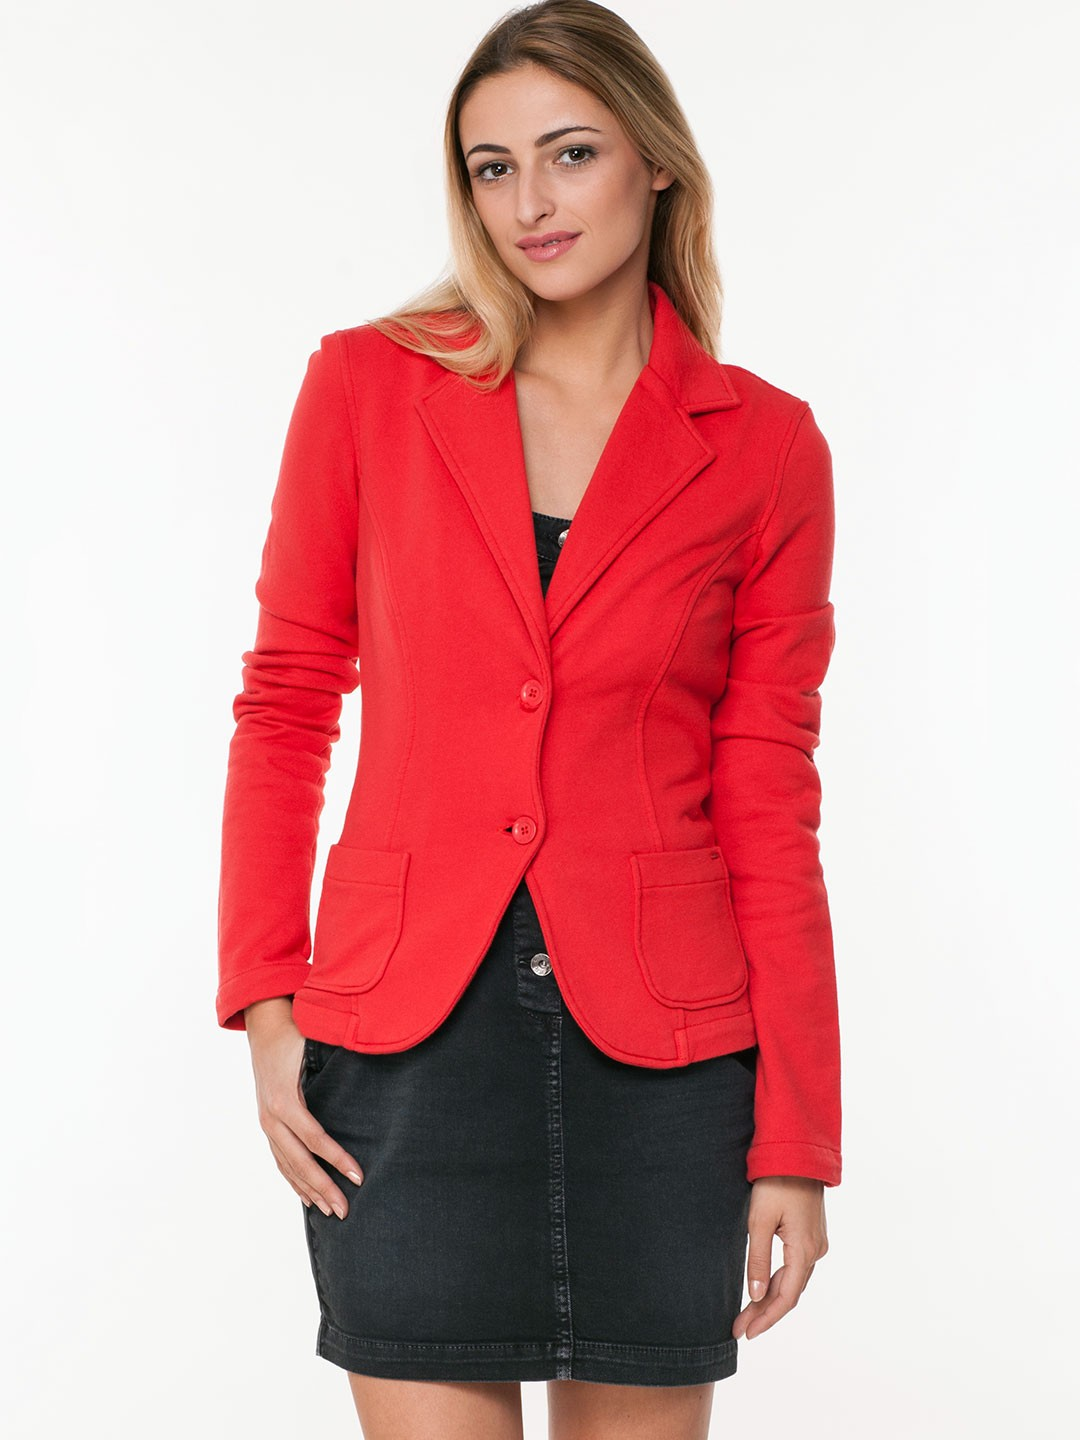 Buy GAS Semi-Formal Jacket For Women - Womenu0026#39;s Red Regular Jackets Online In India